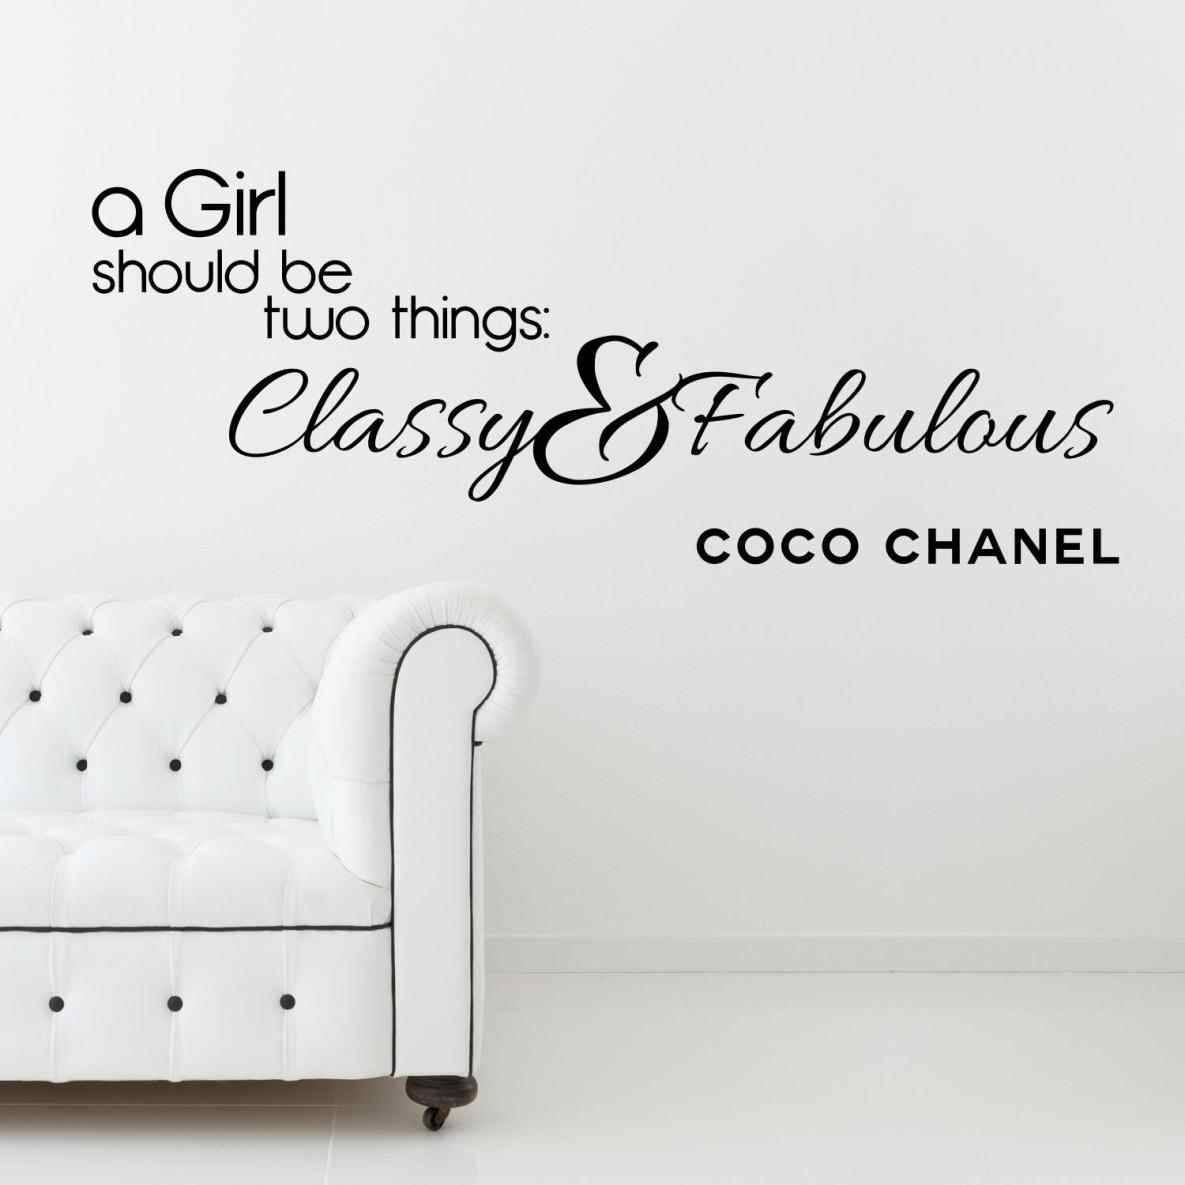 Art And Get Fresh Off The Press Vinyl Wall Decal Quote Inspiration For Most Recent Coco Chanel Wall Decals (View 8 of 25)